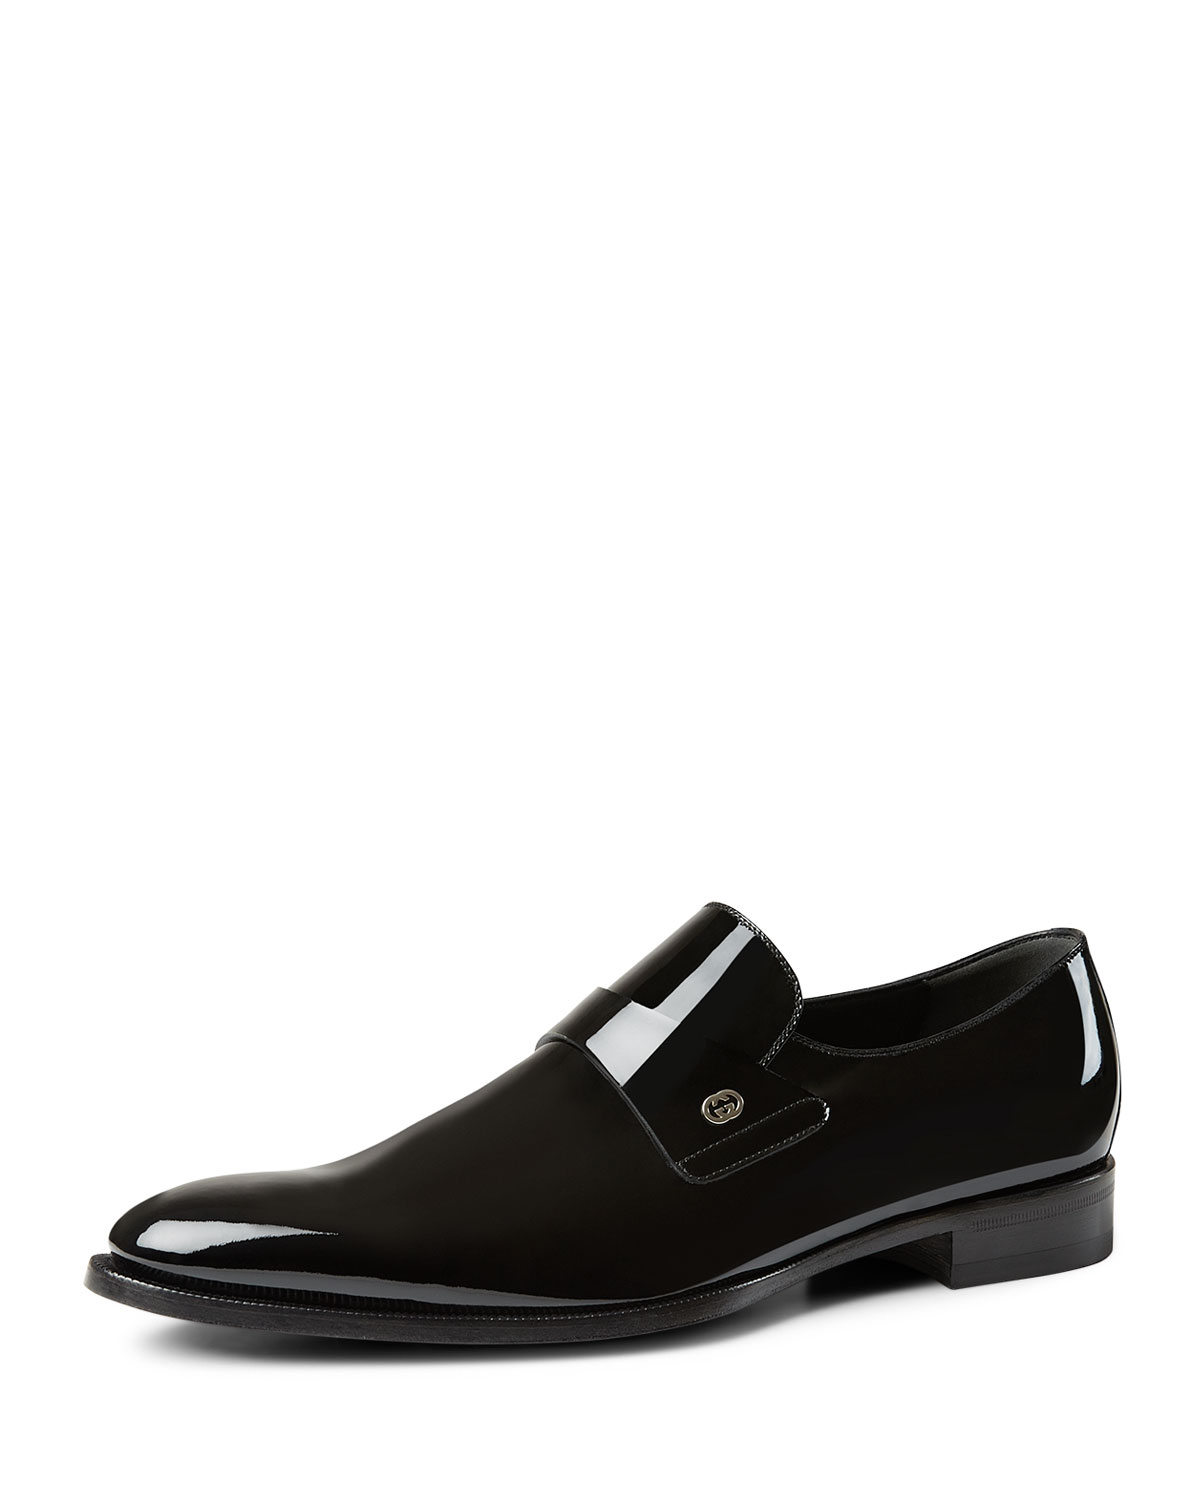 Lyst Gucci Patent Leather Loafer In Black For Men